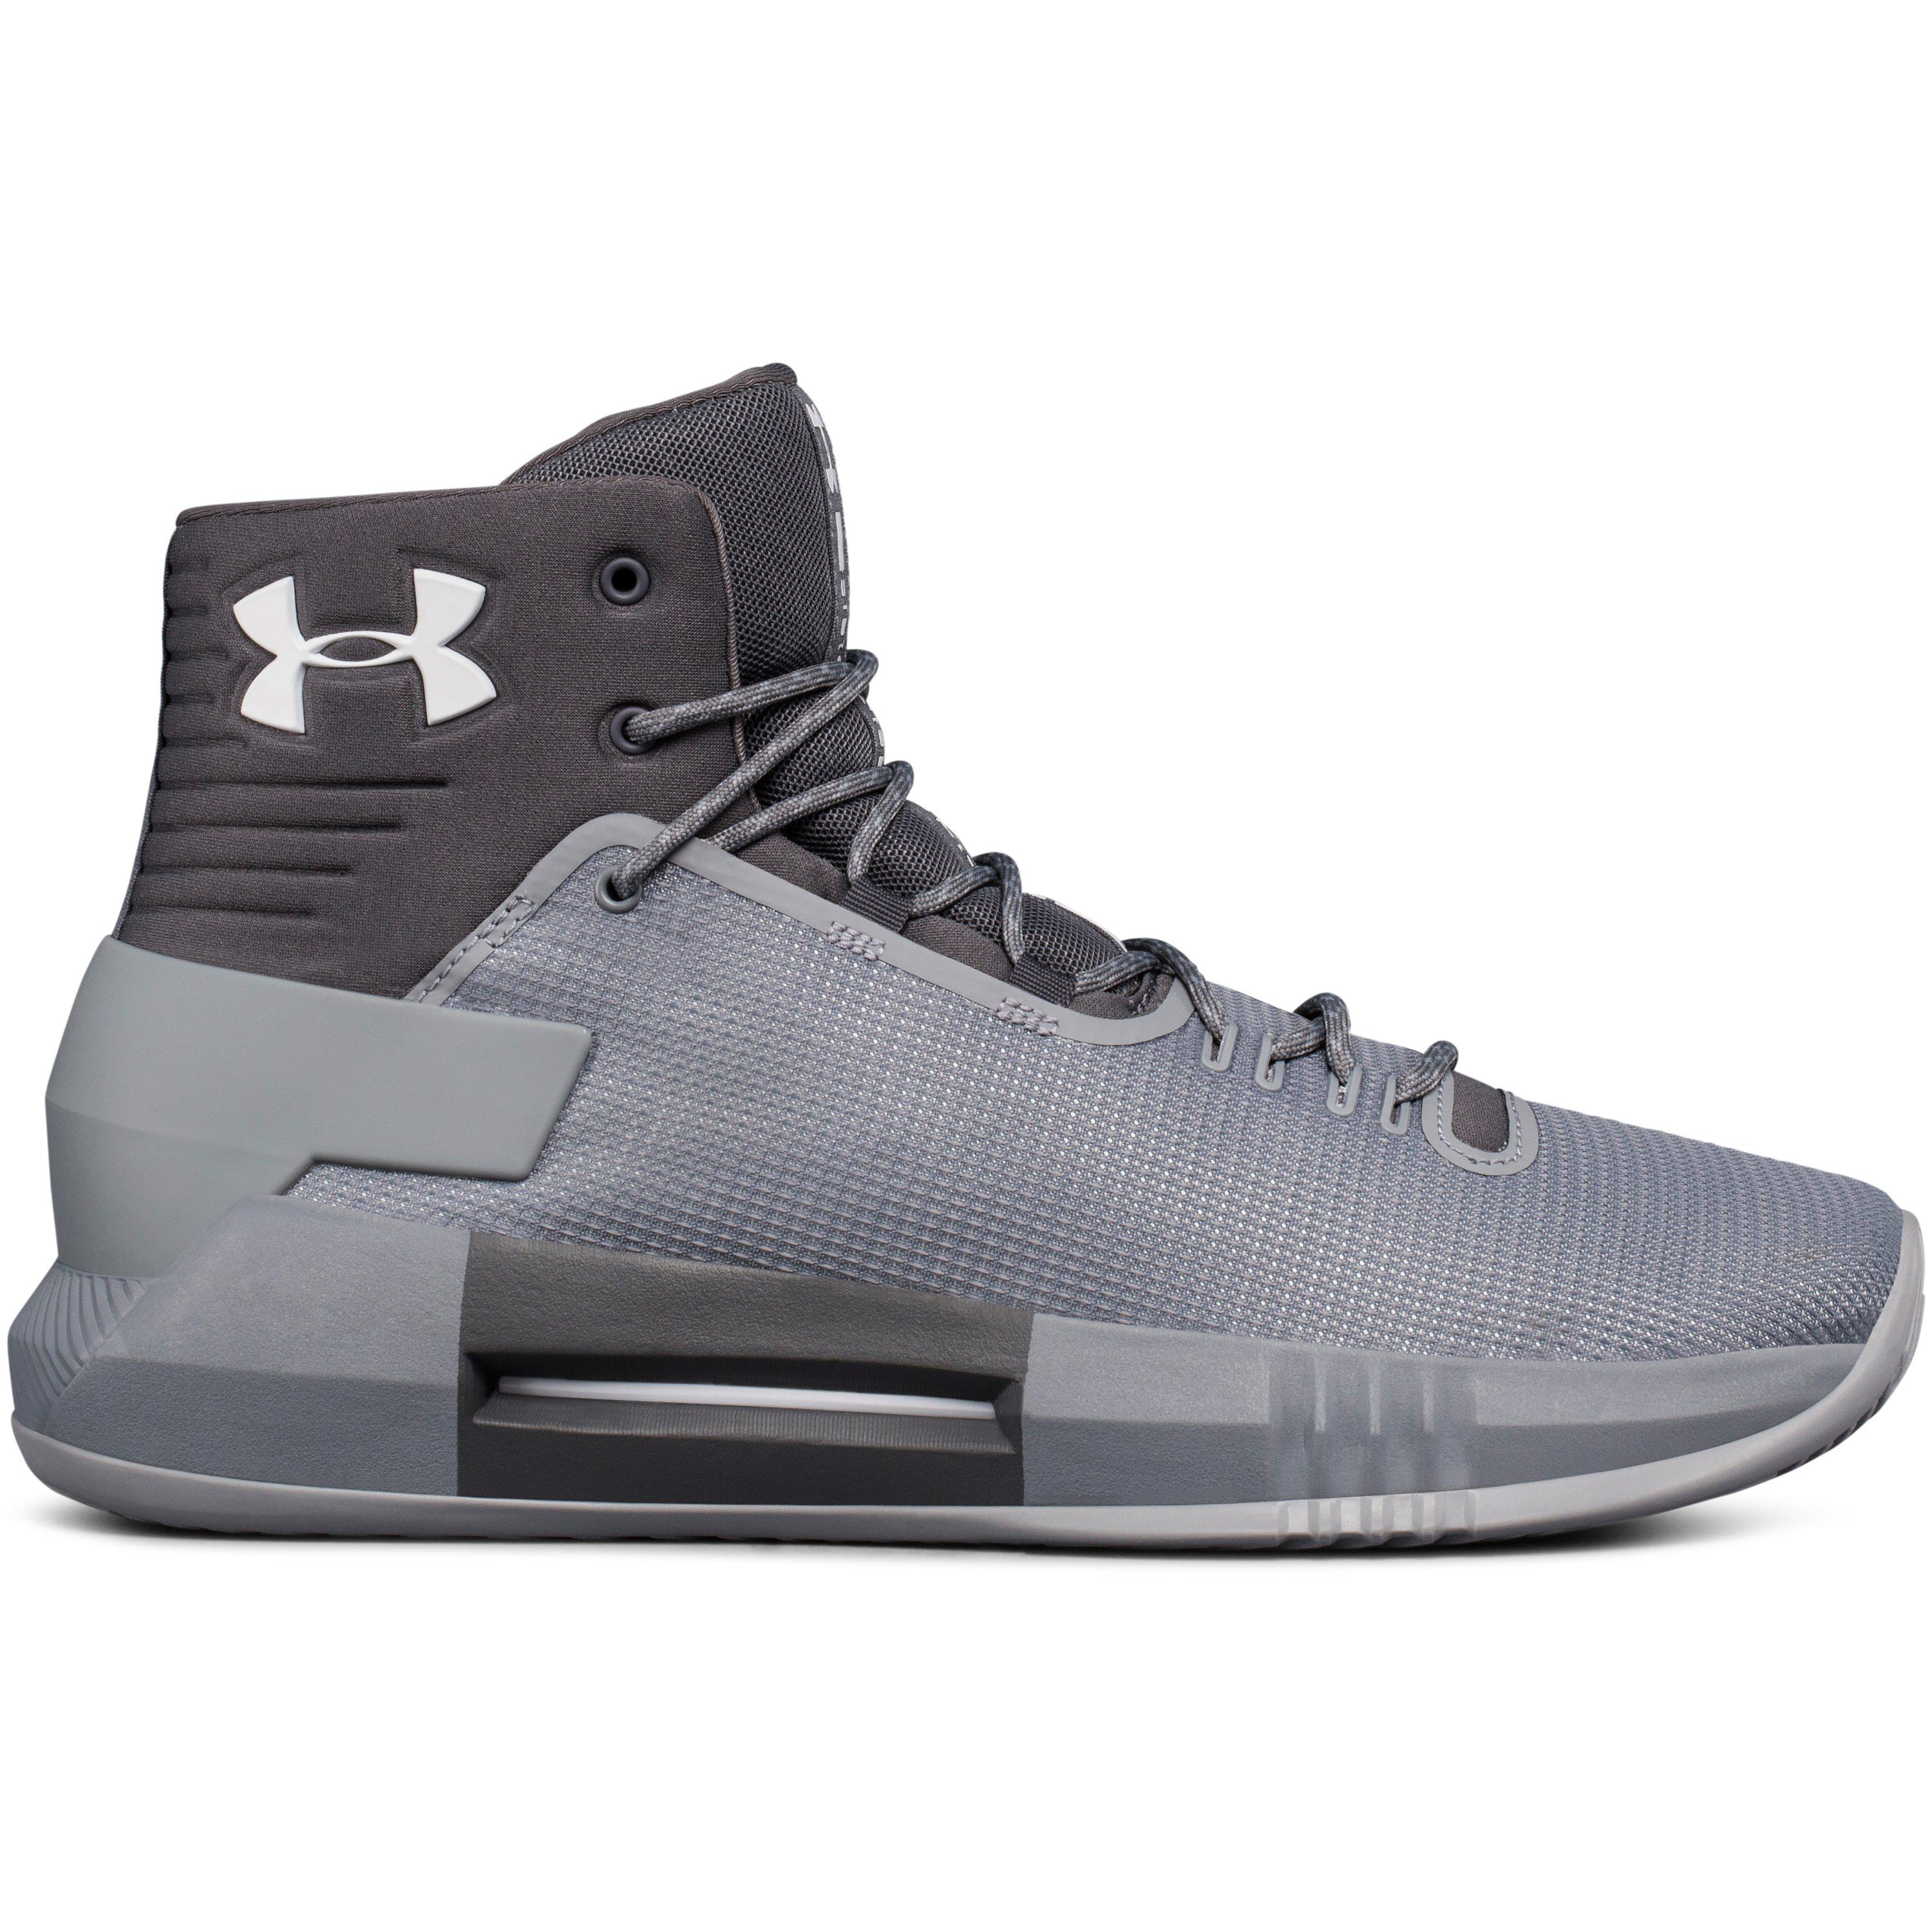 Under Armour Mens Drive 4 Low Basketball Shoe 11.5 M US, Steel//Graphite//Metallic Silver